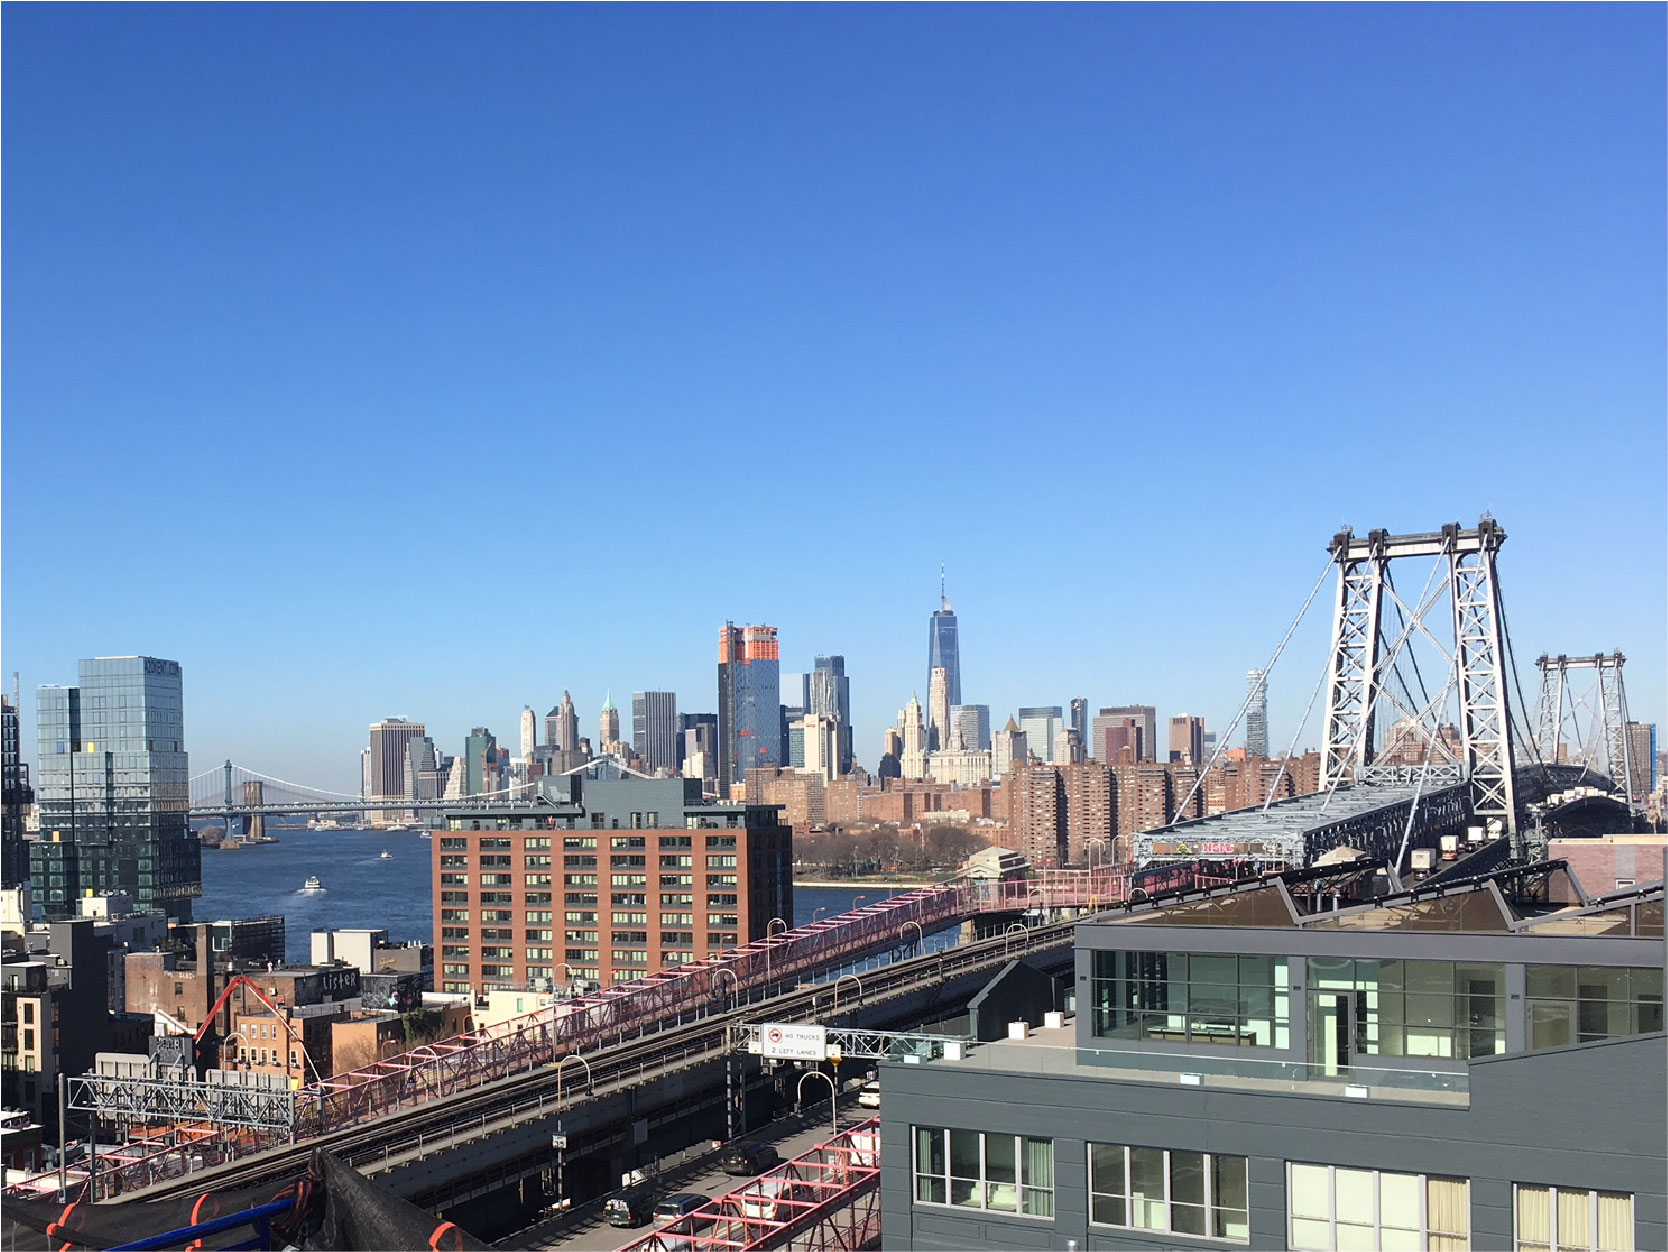 Featured photo of Downtown Manhattan taken during an Accessibility inspection